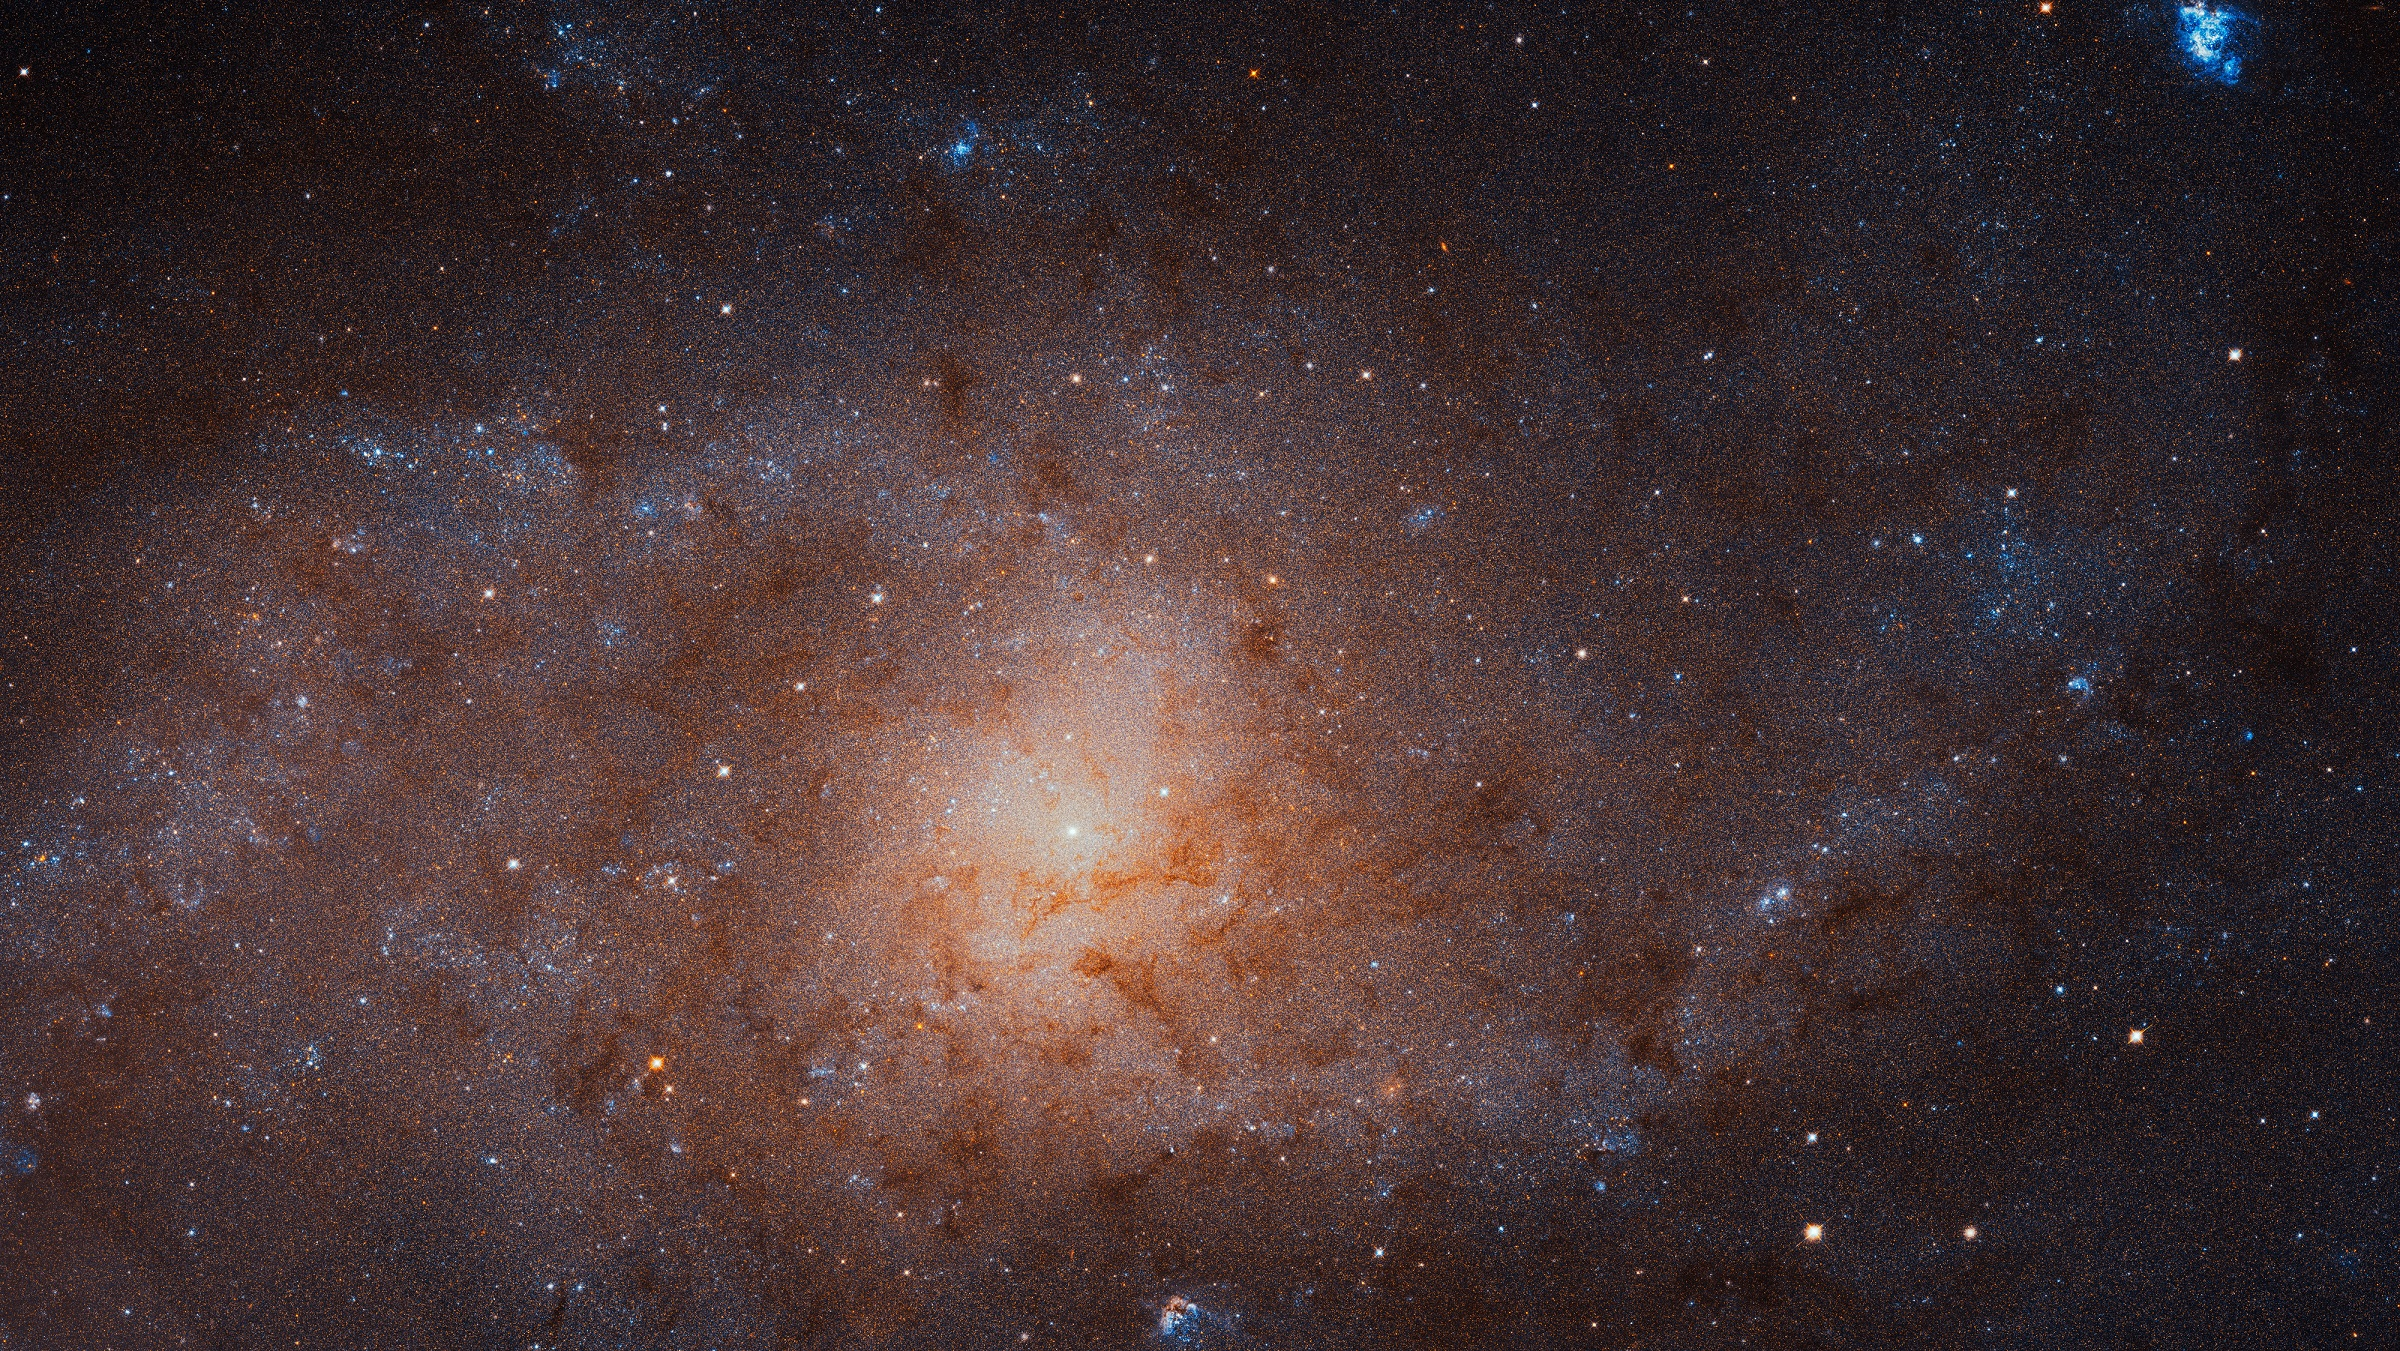 Hubble Space Telescope view of the Triangulum Galaxy